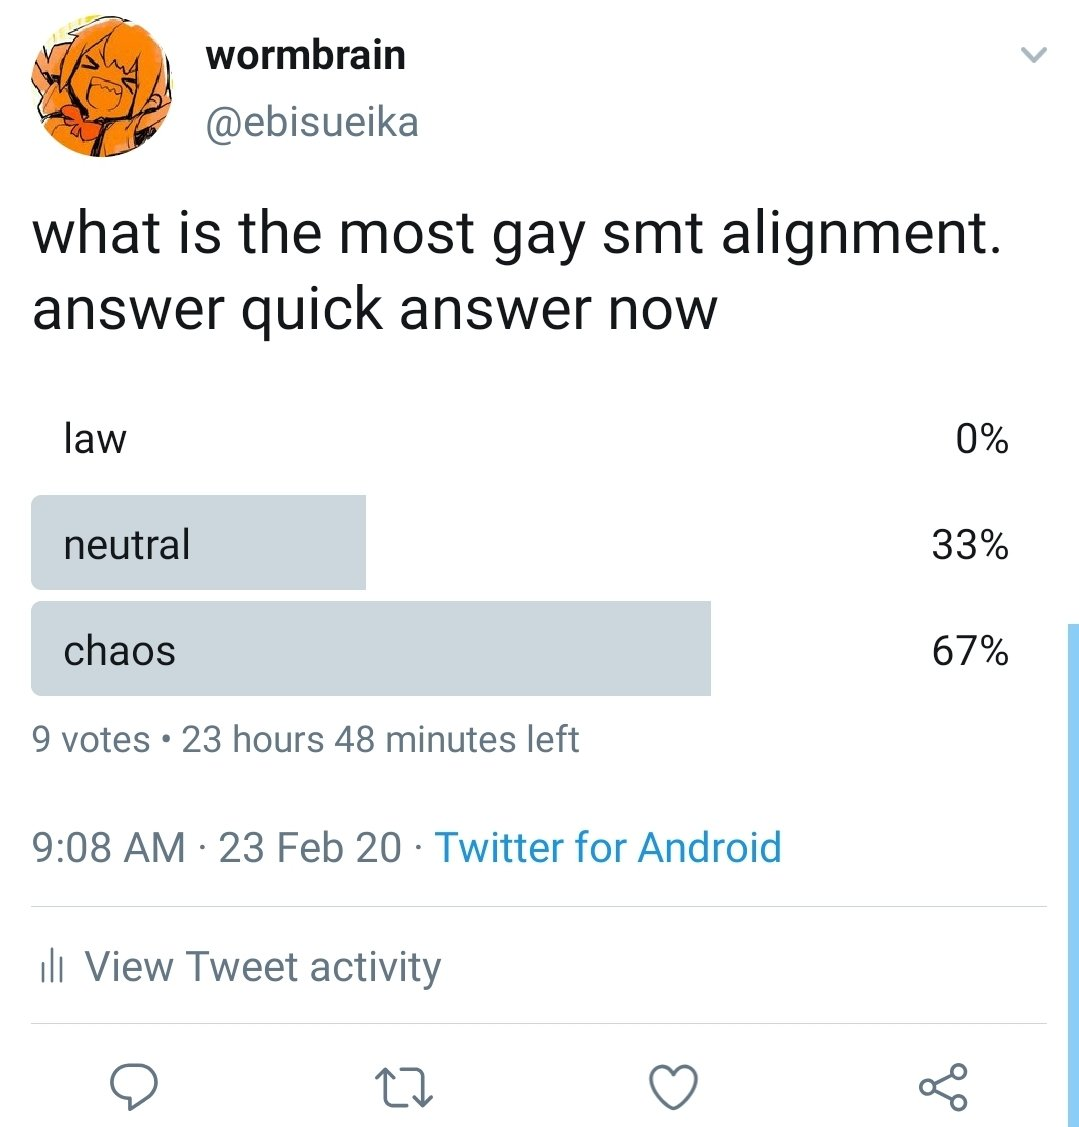 im so glad i hard the prescience to cap it cause someone voted law right after pic.twitter.com/tTFx86fv2H